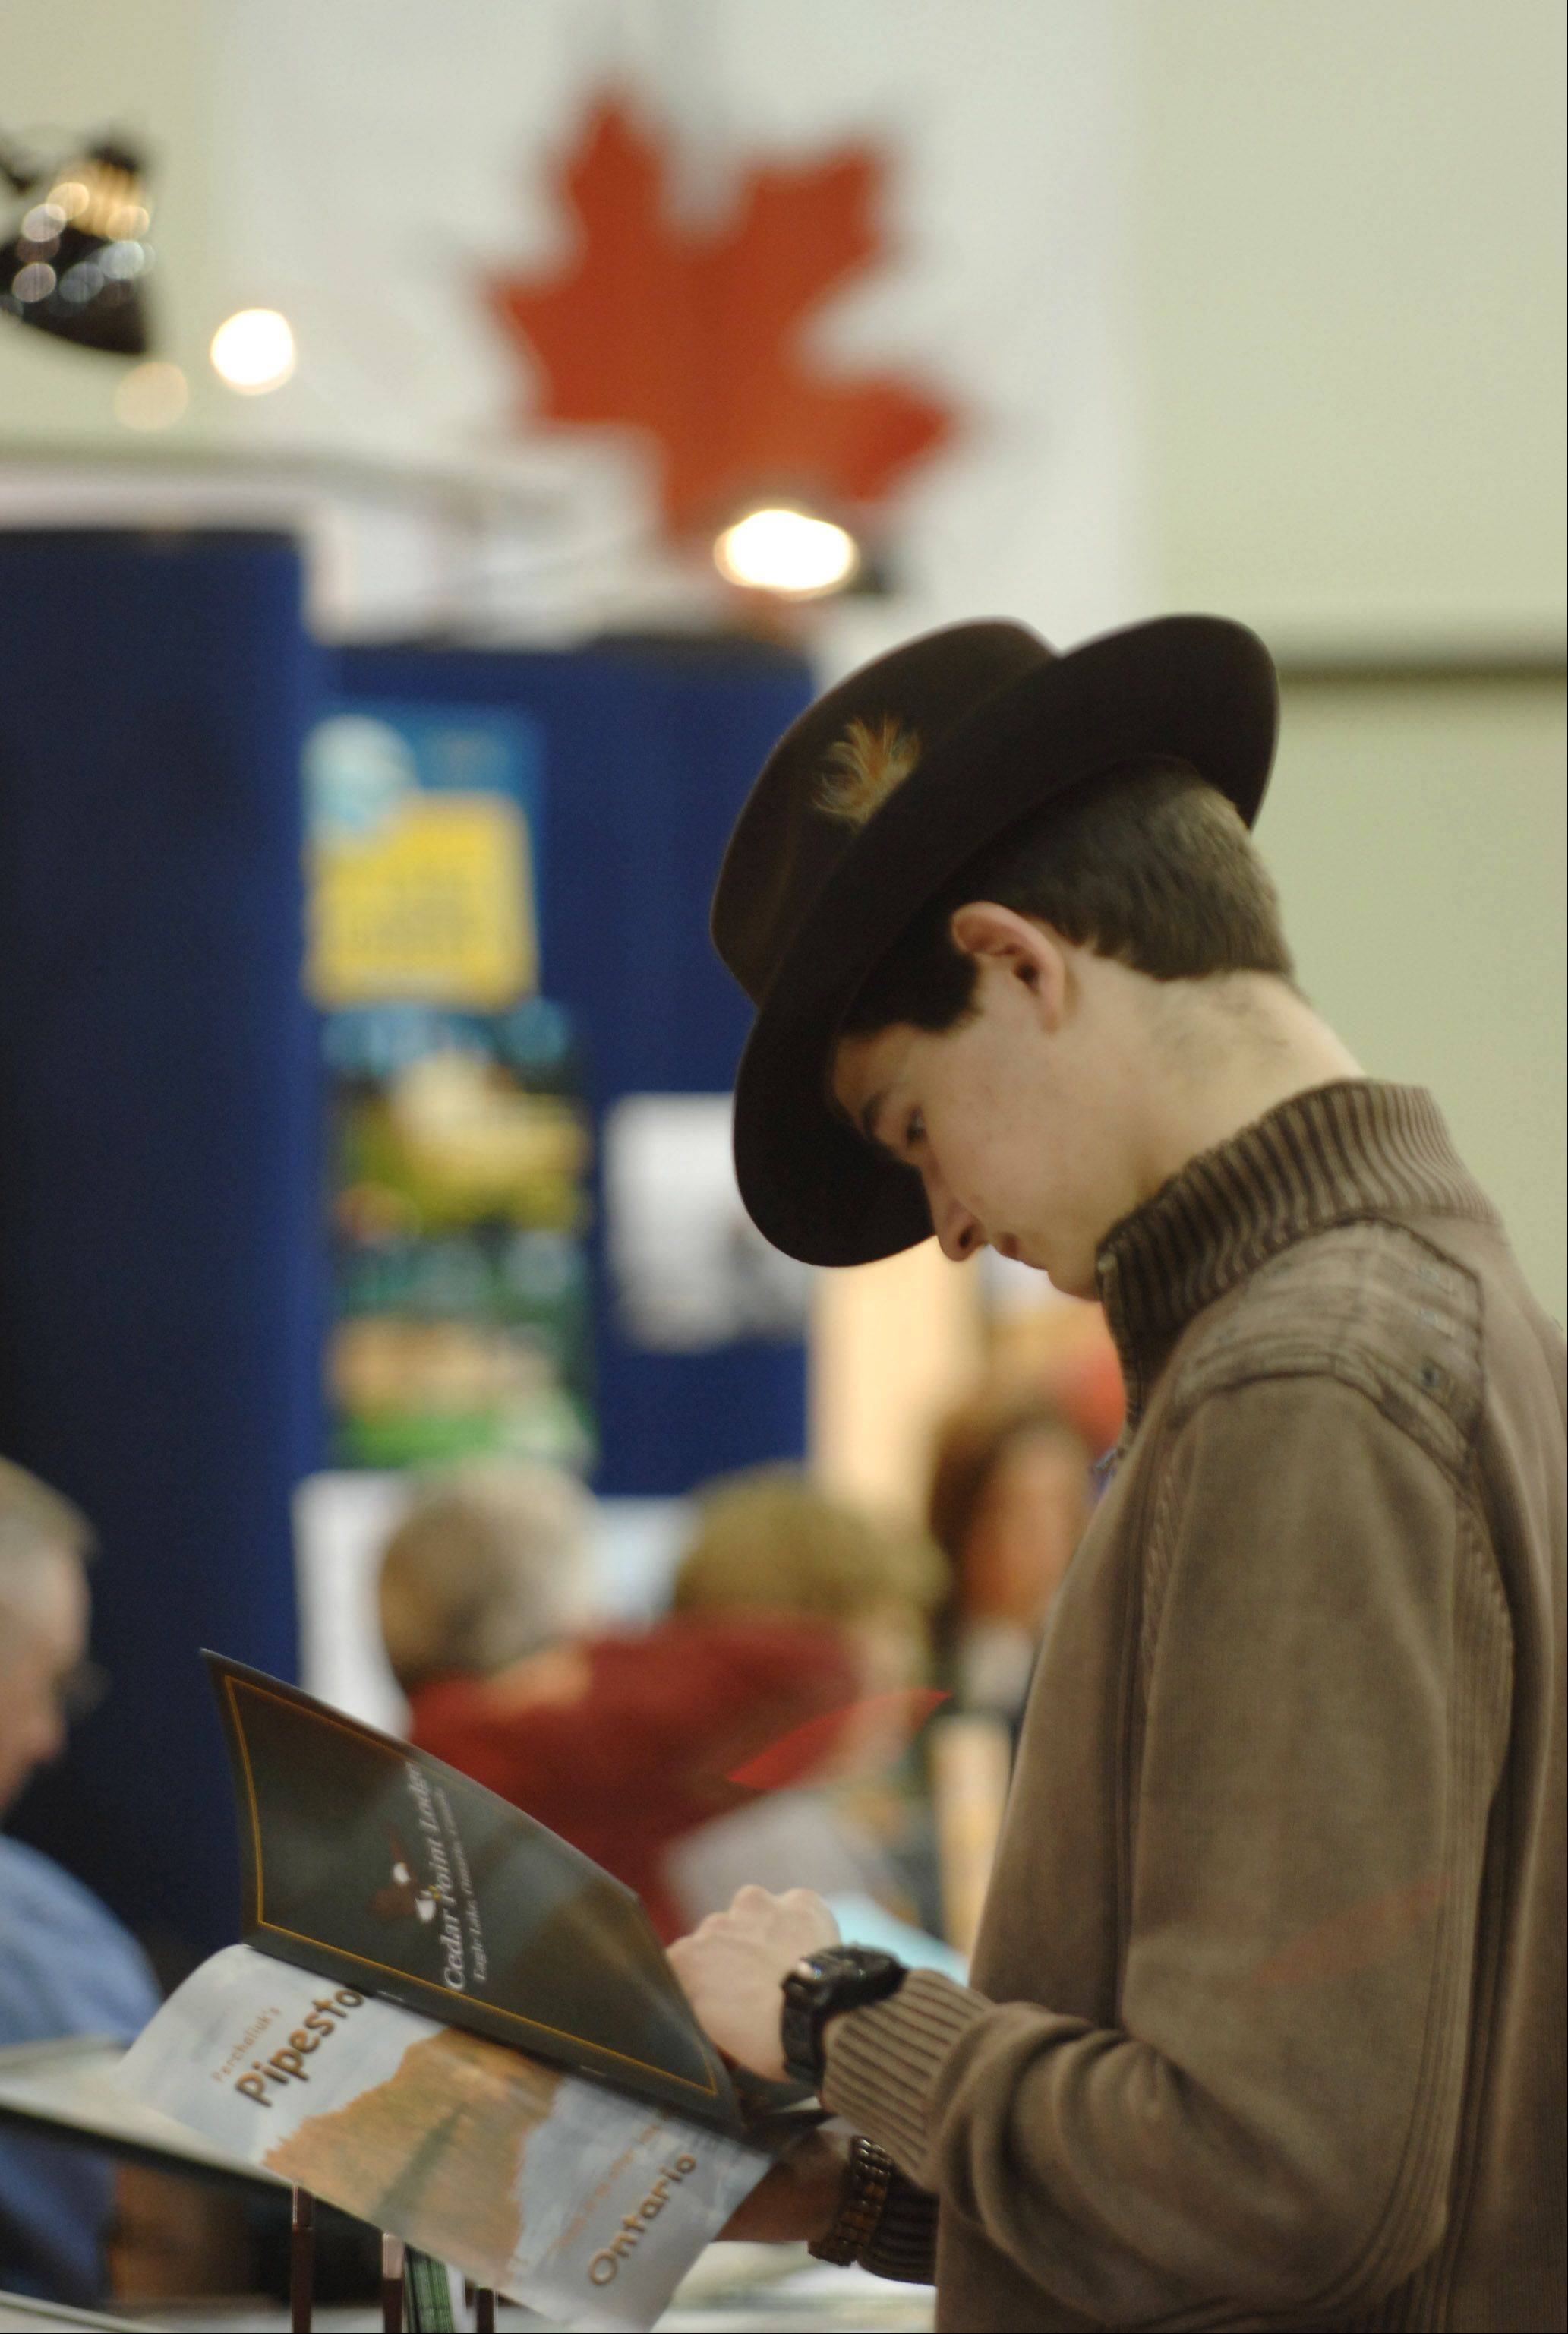 A.J. Englehardt of Lake Bluff flips through a brochure at last year's All-Canada Show at Pheasant Run Resort in St. Charles. The annual show draws those interested in vacation spots, boats, fishing, guns, and all things Canada. A.J. was with his dad, Allan.